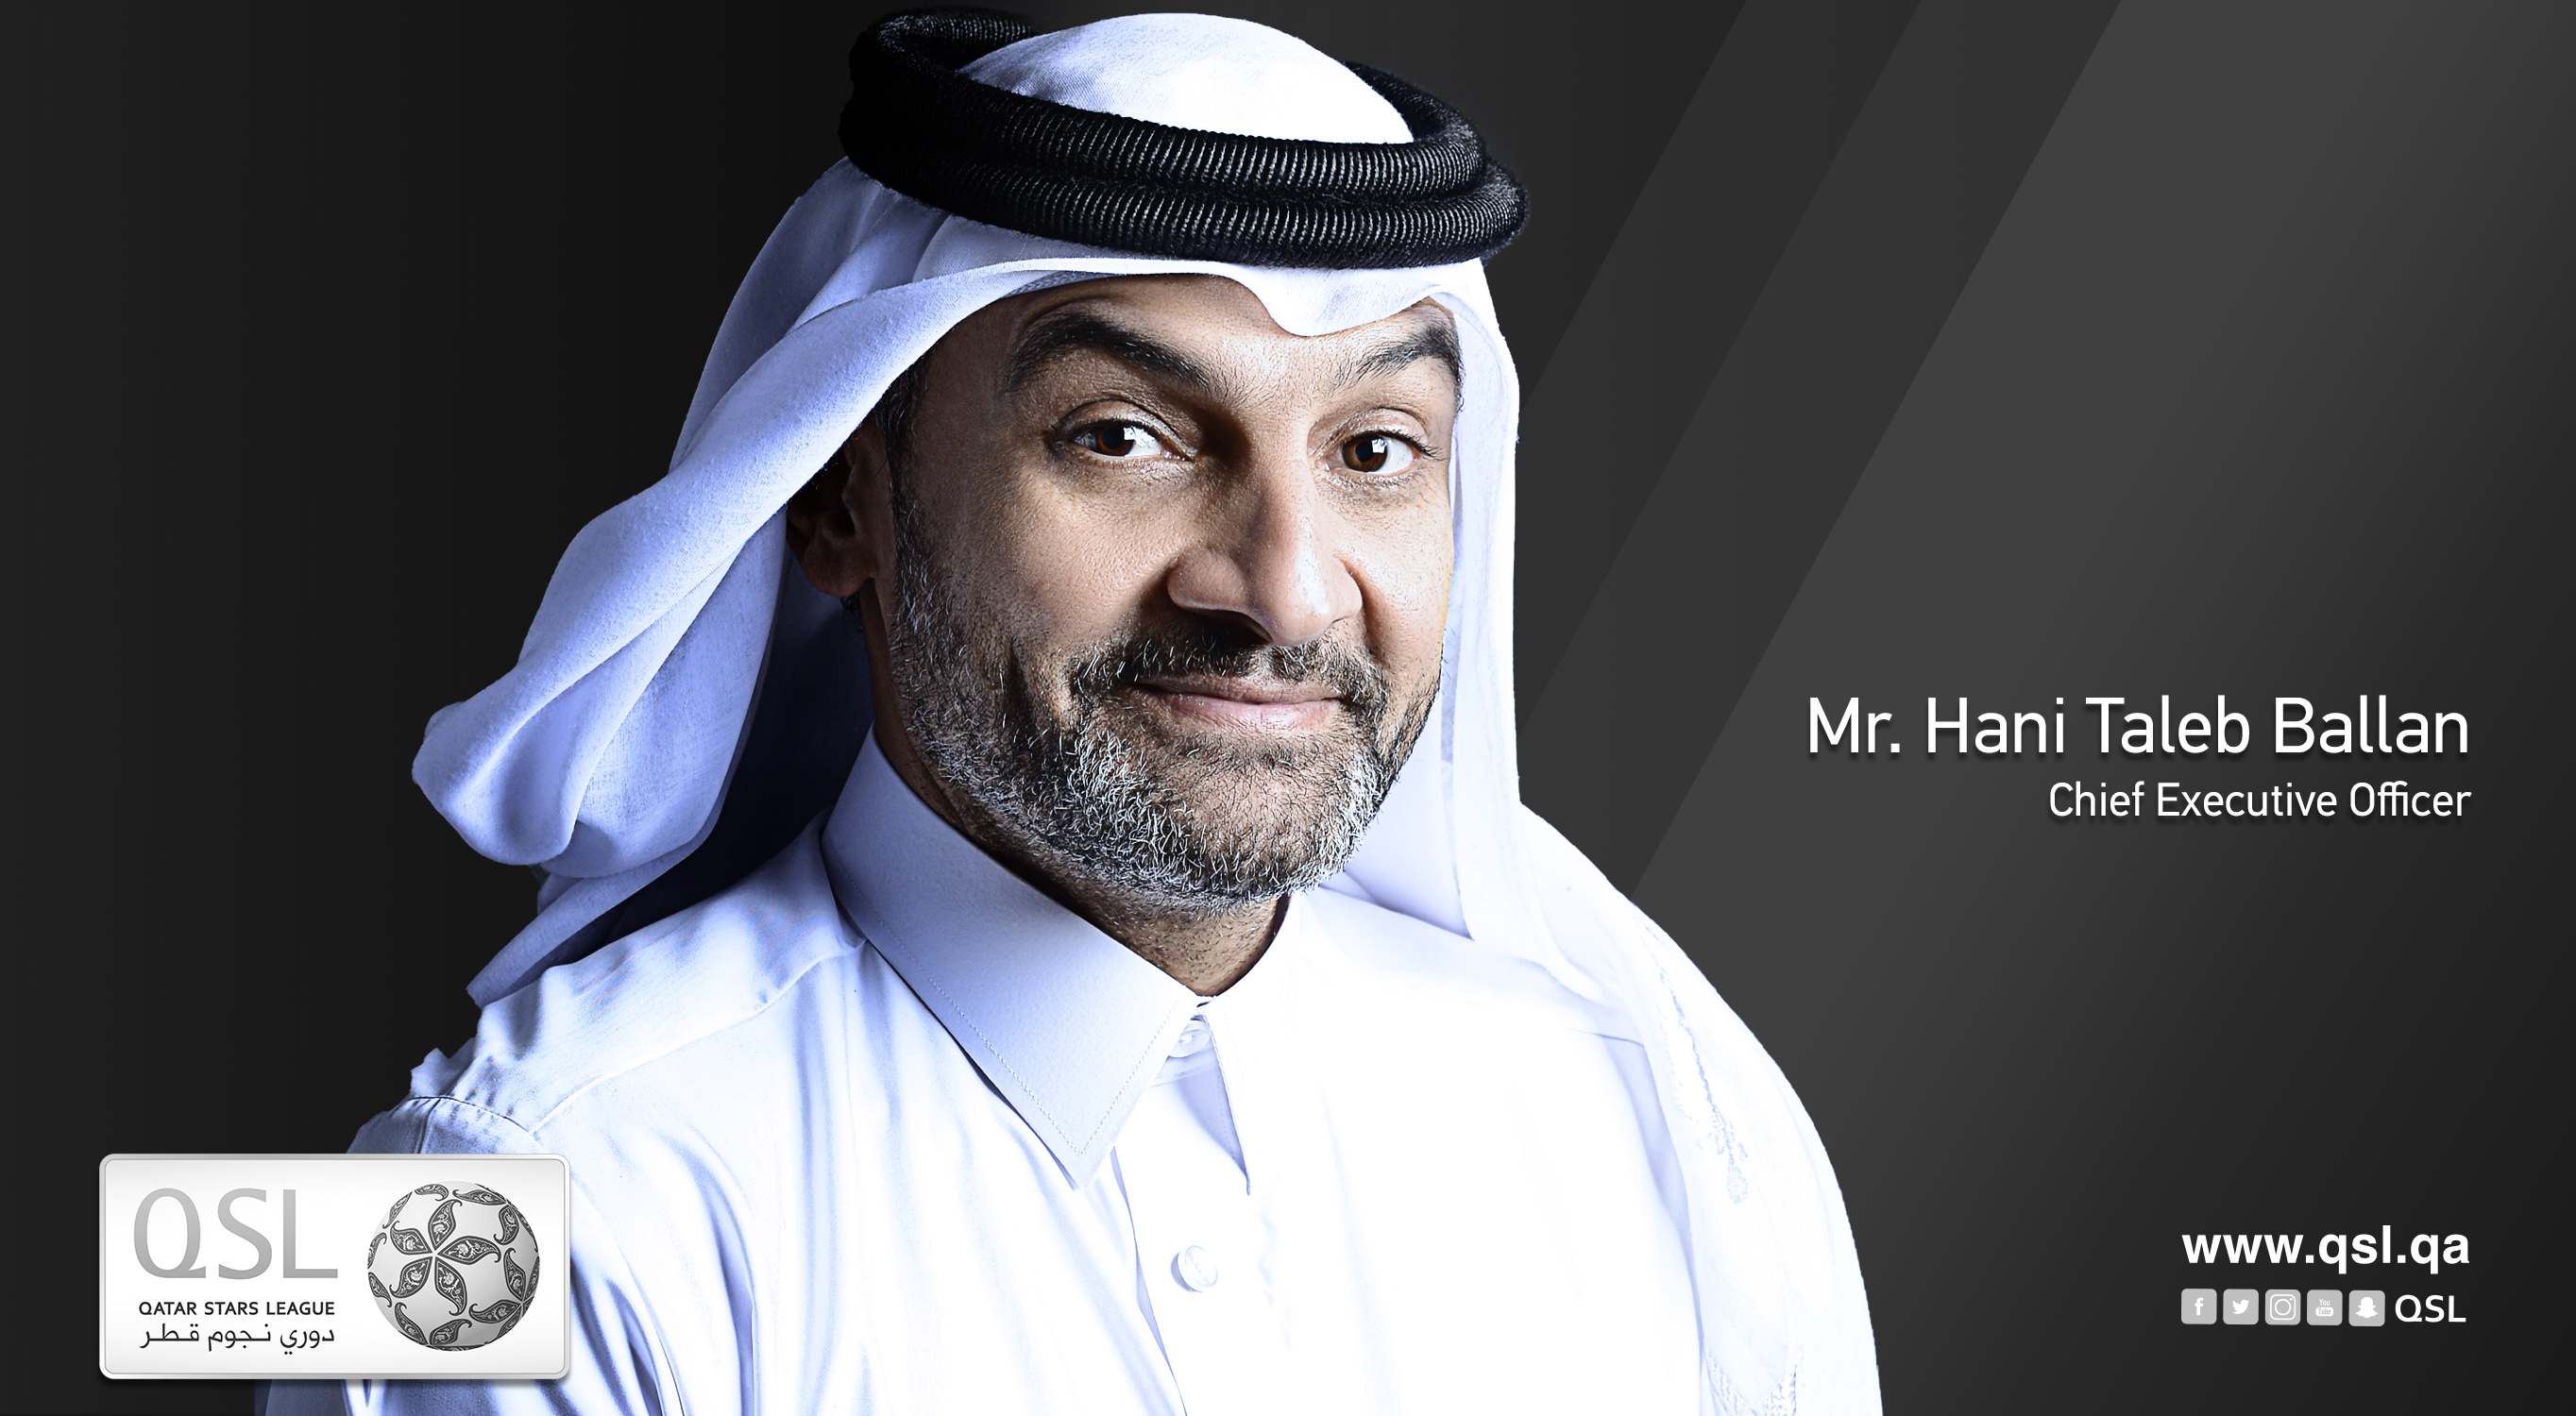 QSL CEO terms NSD a great opportunity to promote sports culture in the community